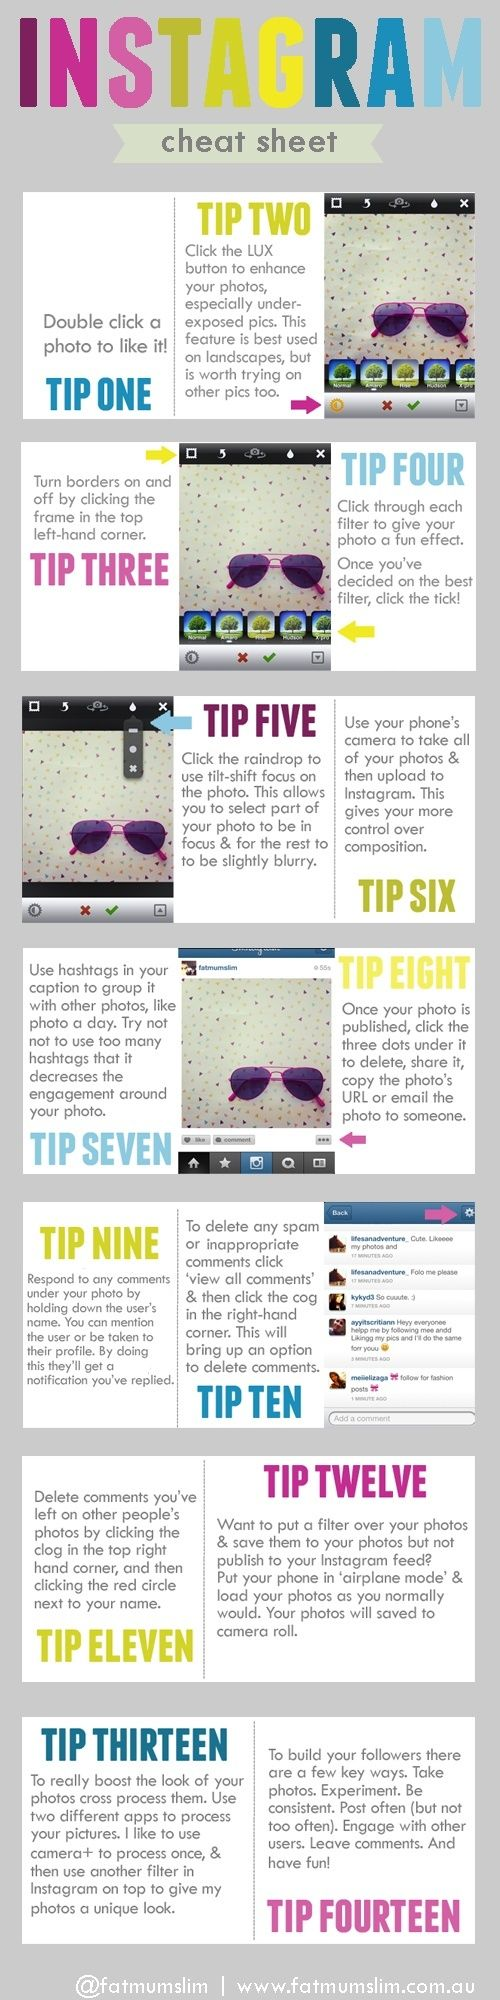 Instagram Cheat Sheet - it gives some good tips on how everything works and what to do to get started. http://mgrconsultinggroup.com